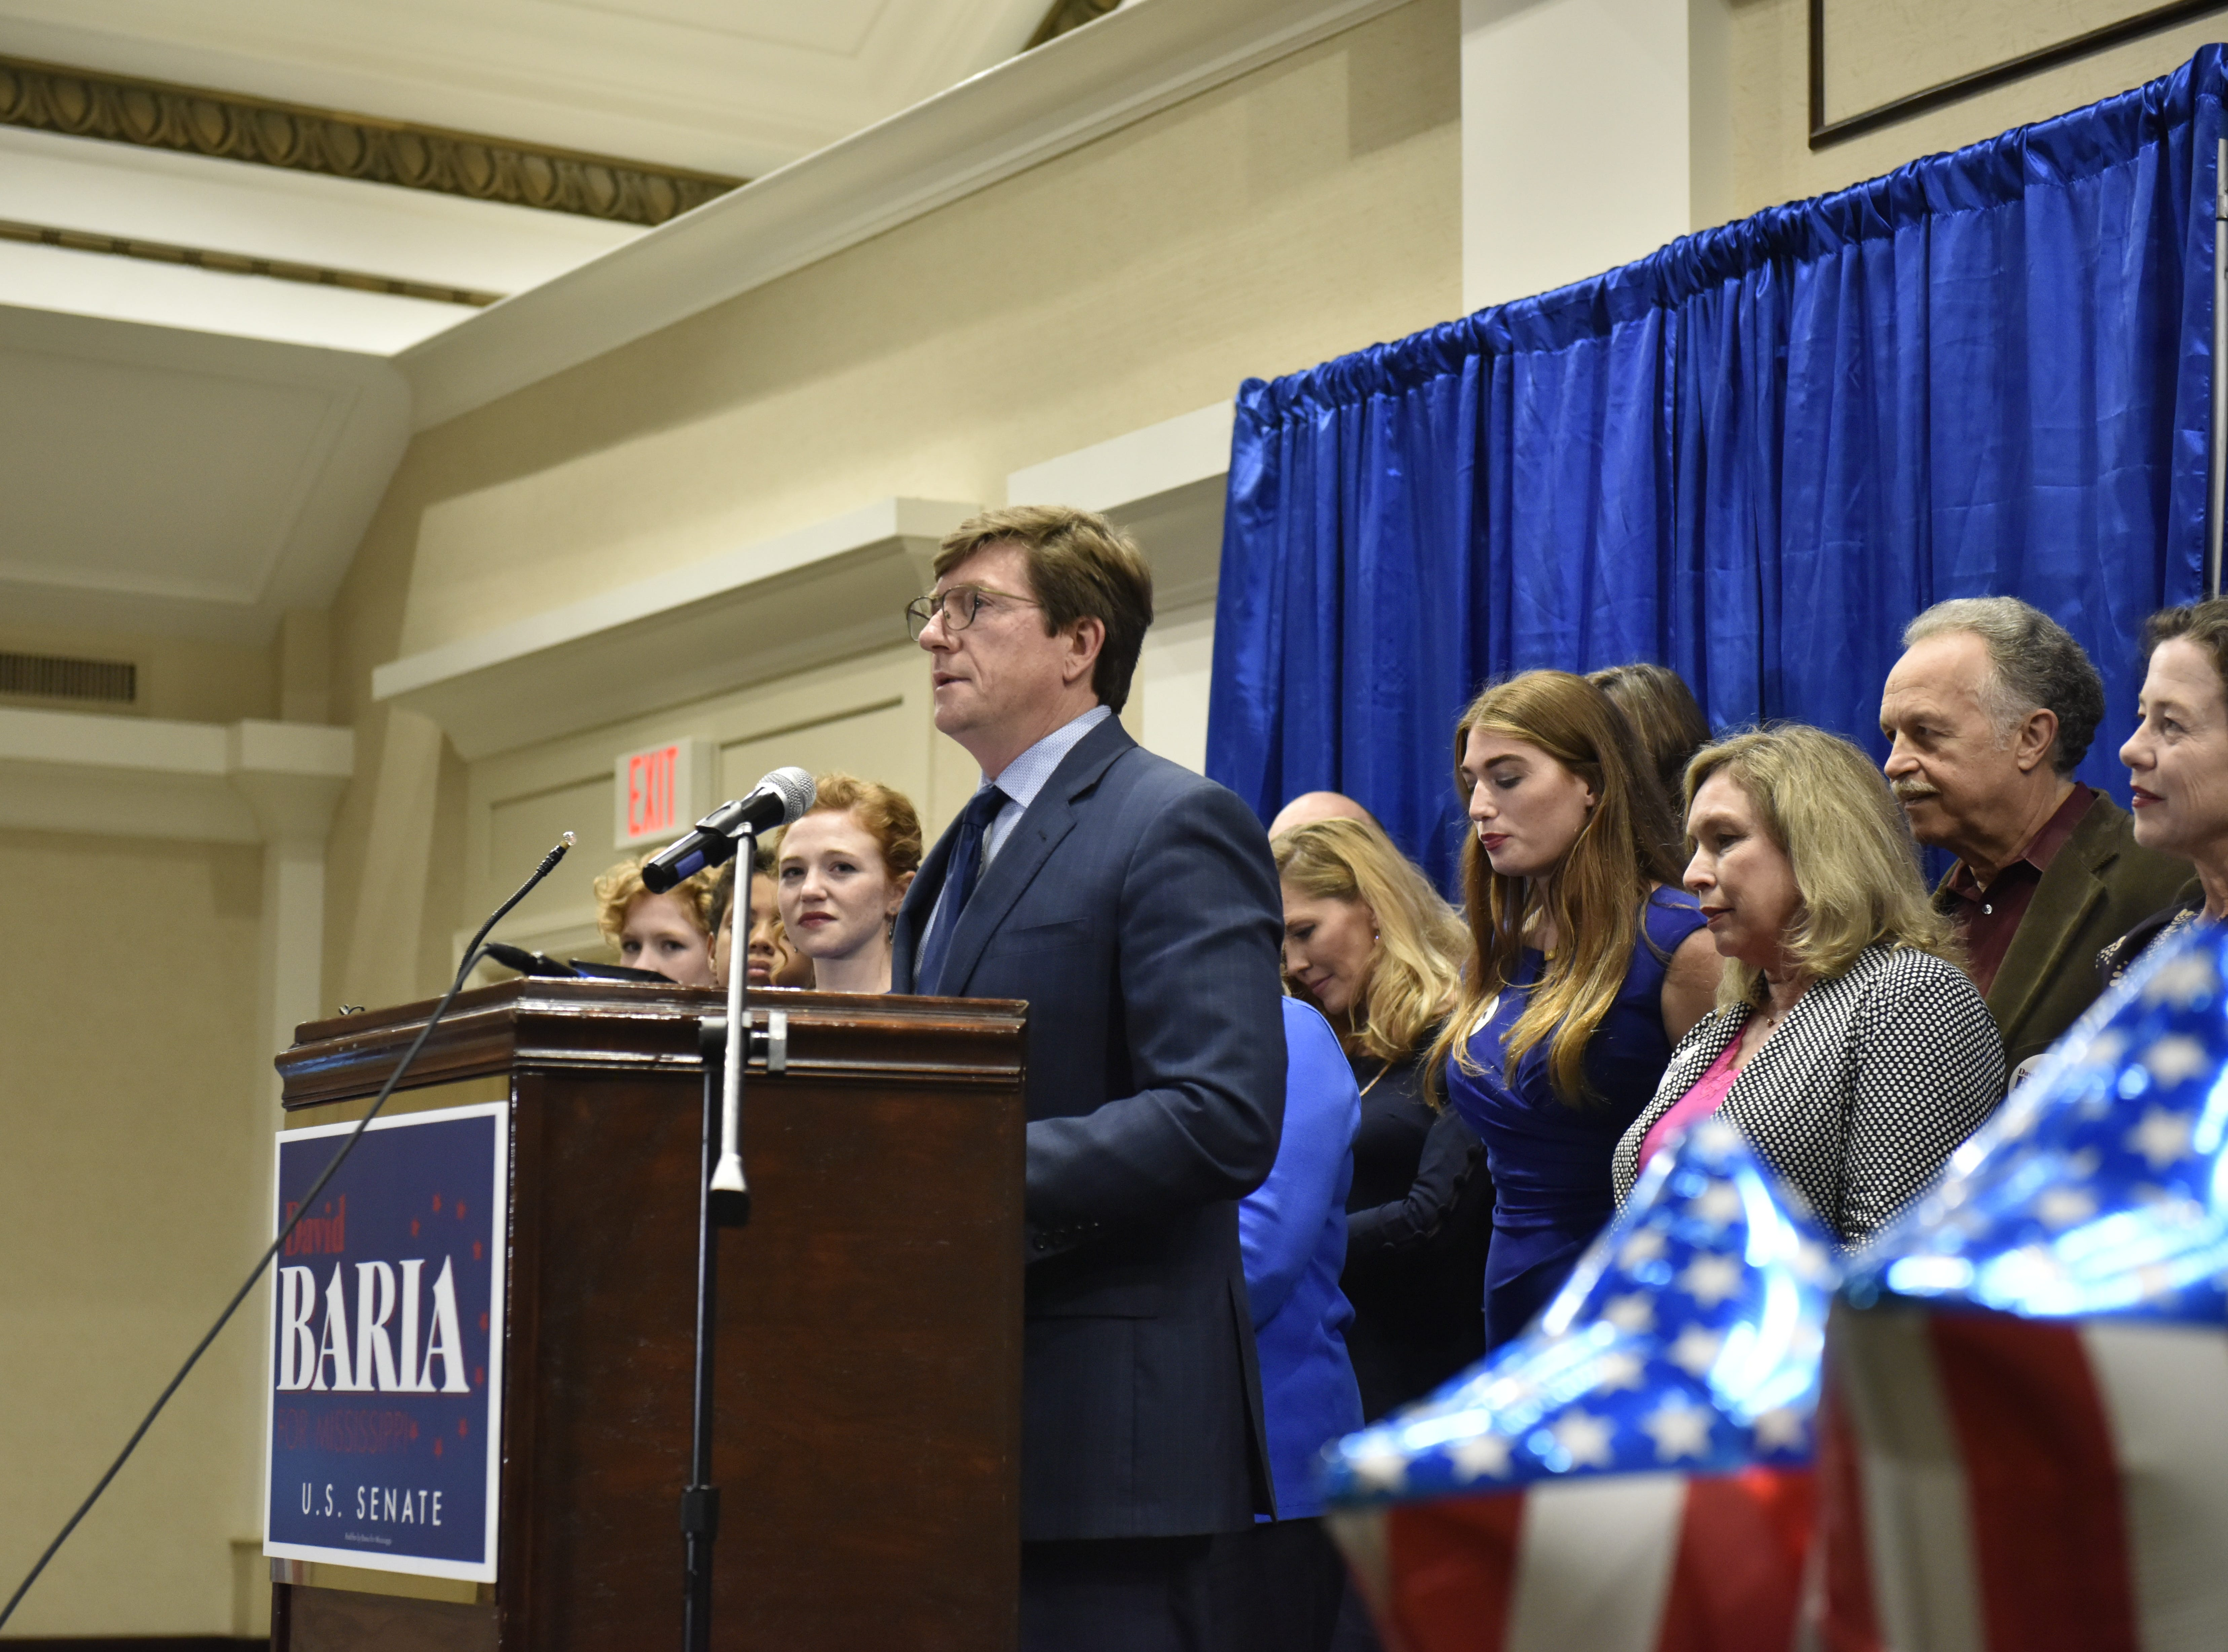 David Baria at his election party